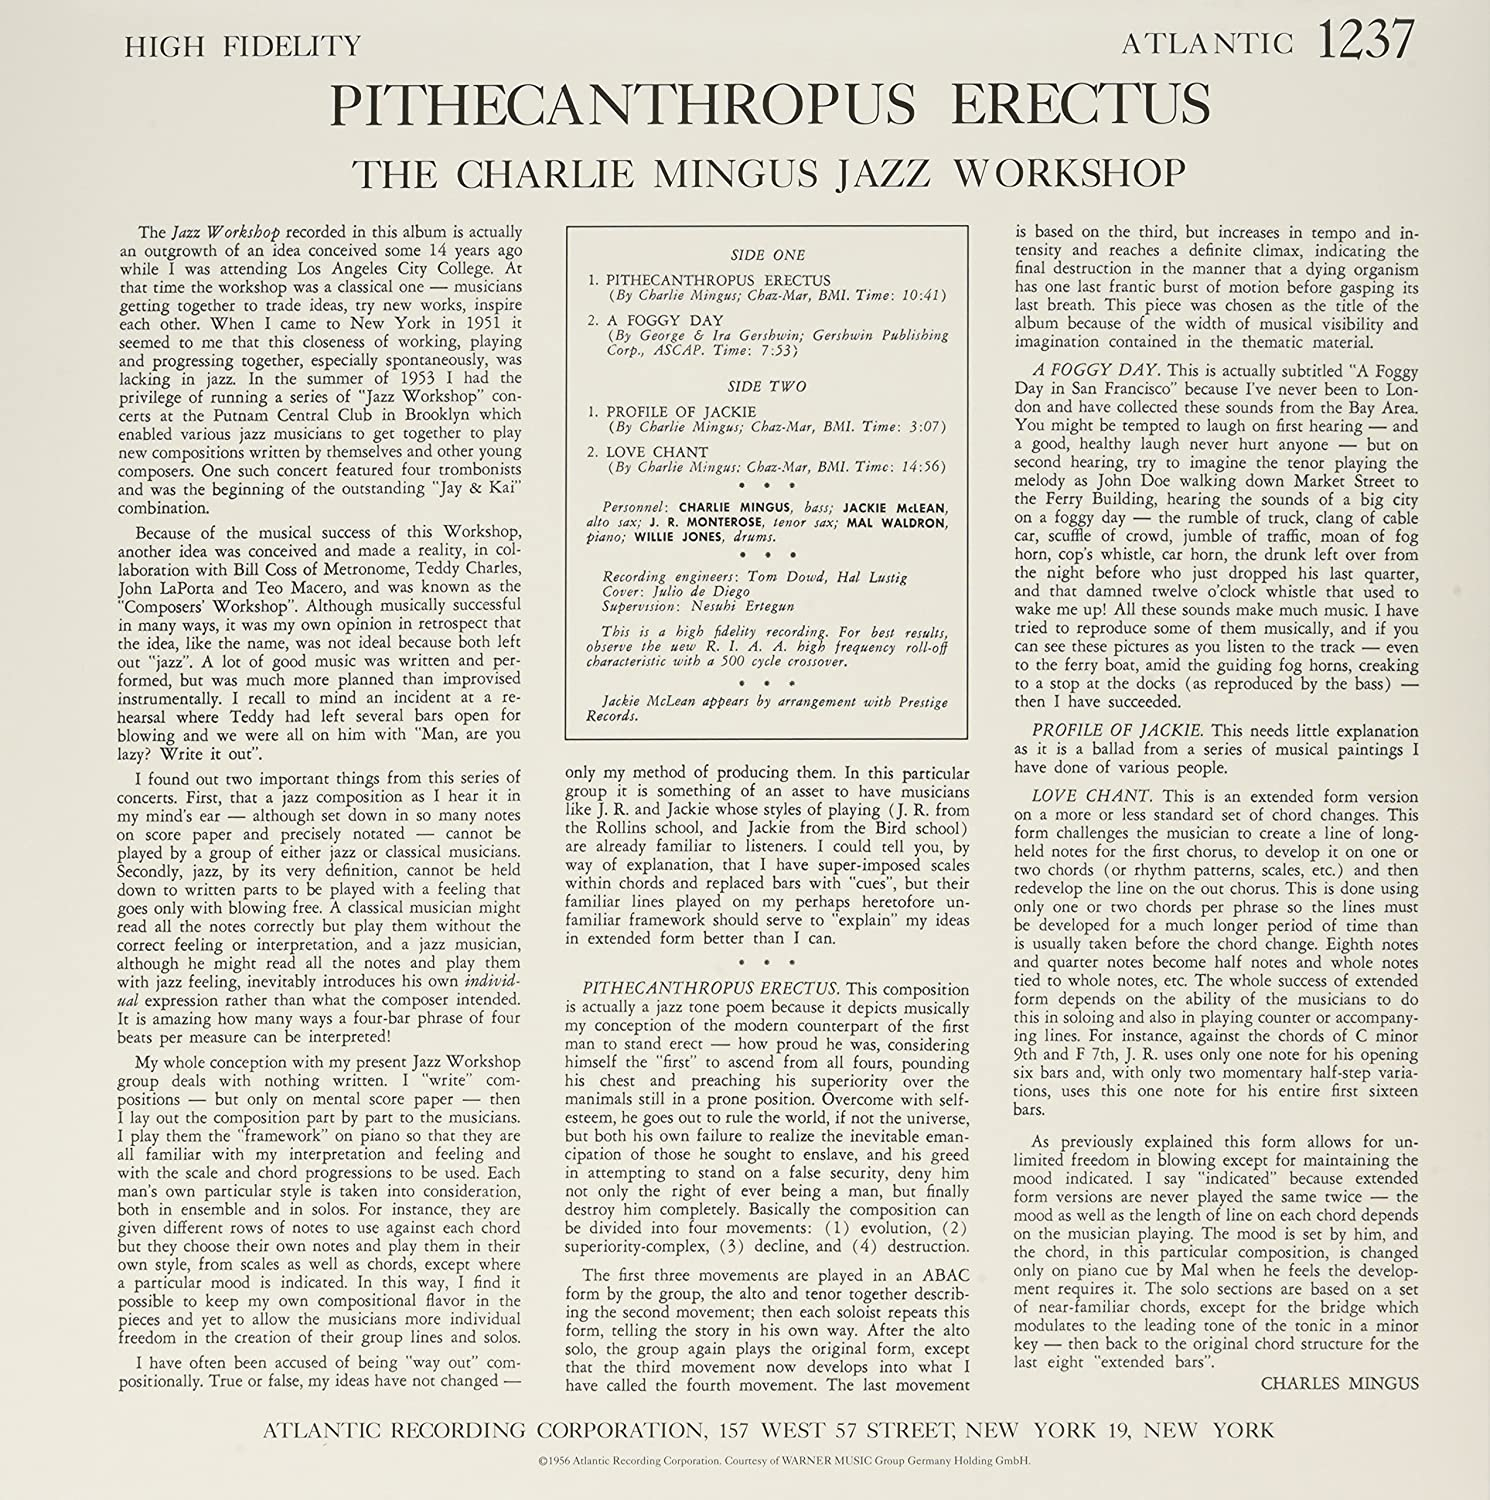 what does pithecanthropus mean